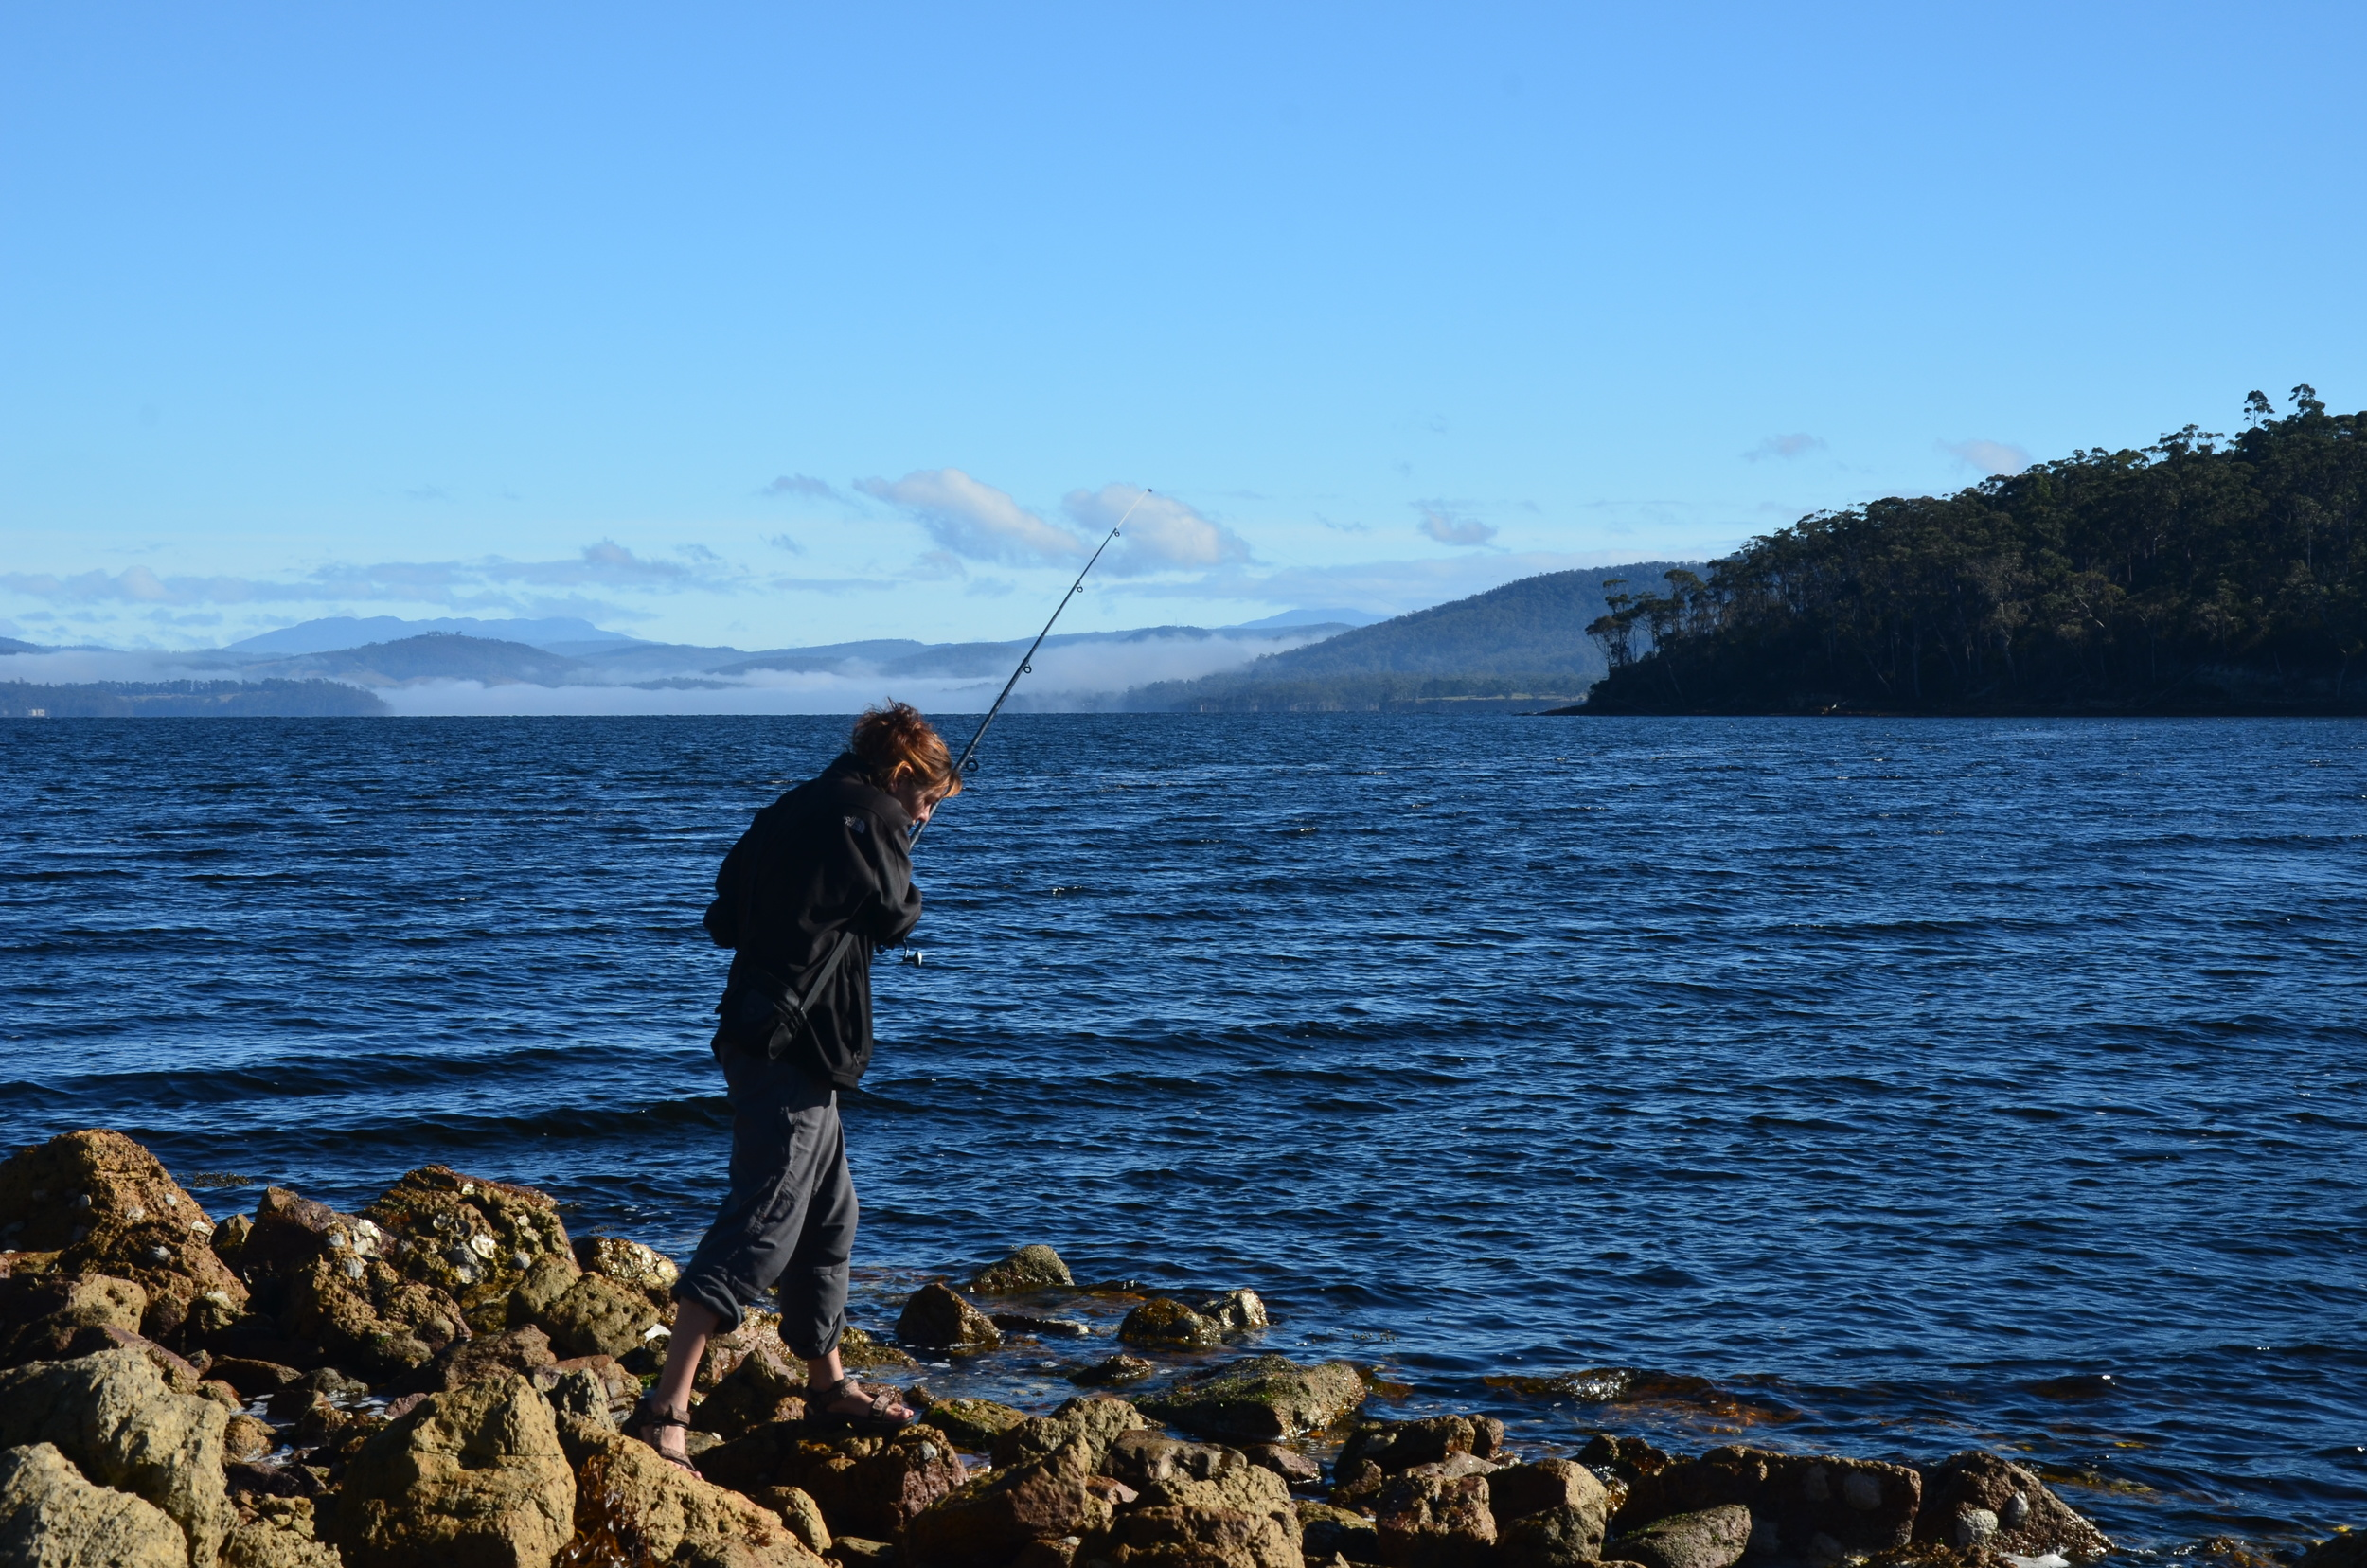 Kerstin trying to catch a bait fish, and succeeding!